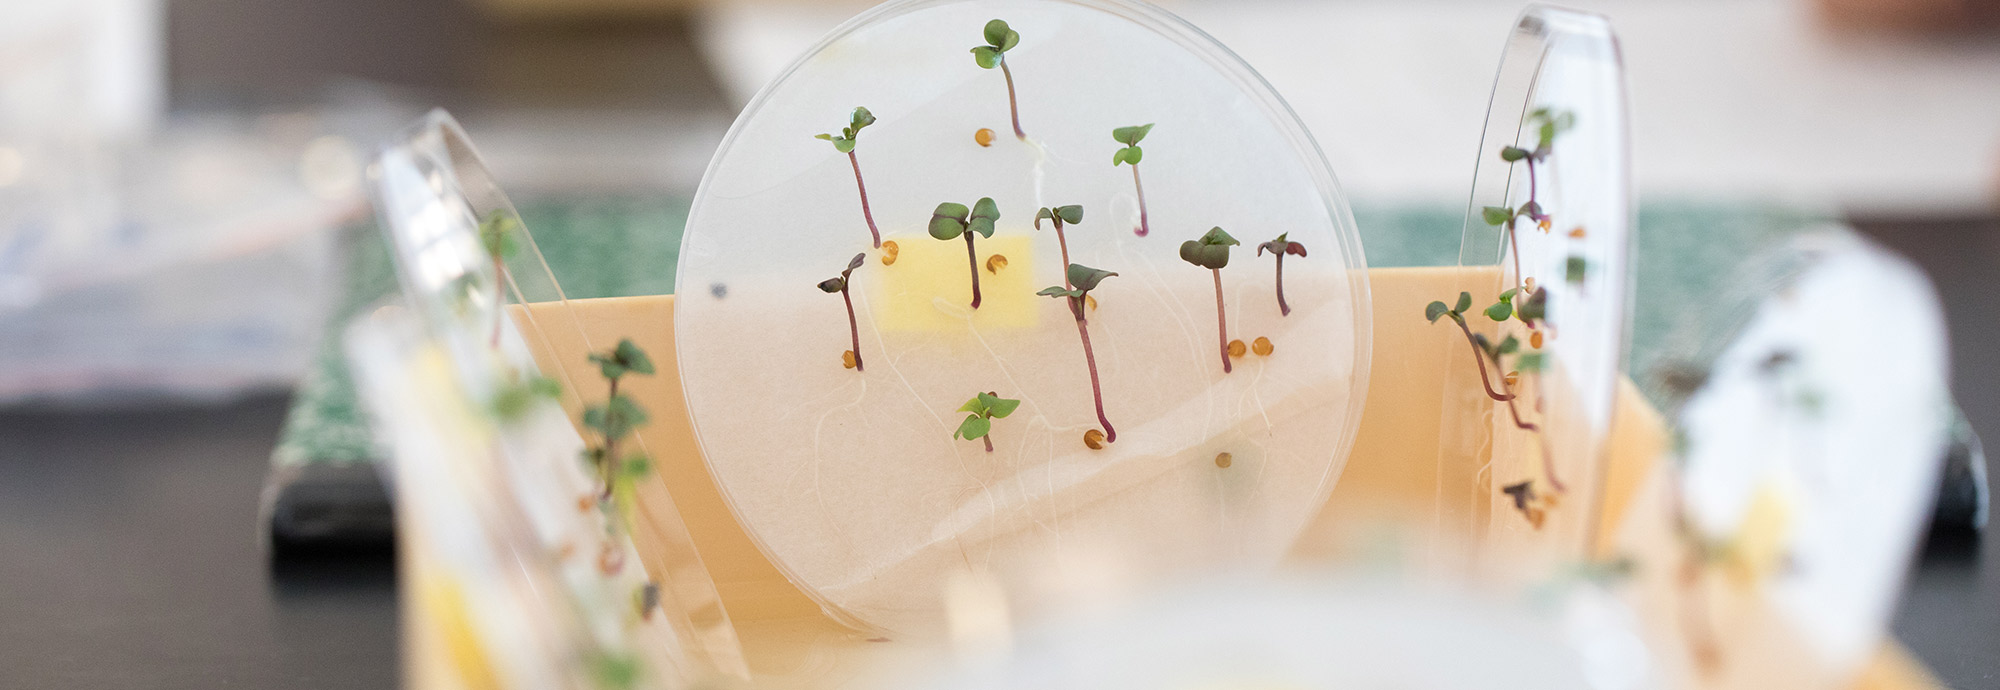 Petri dish with plants growing